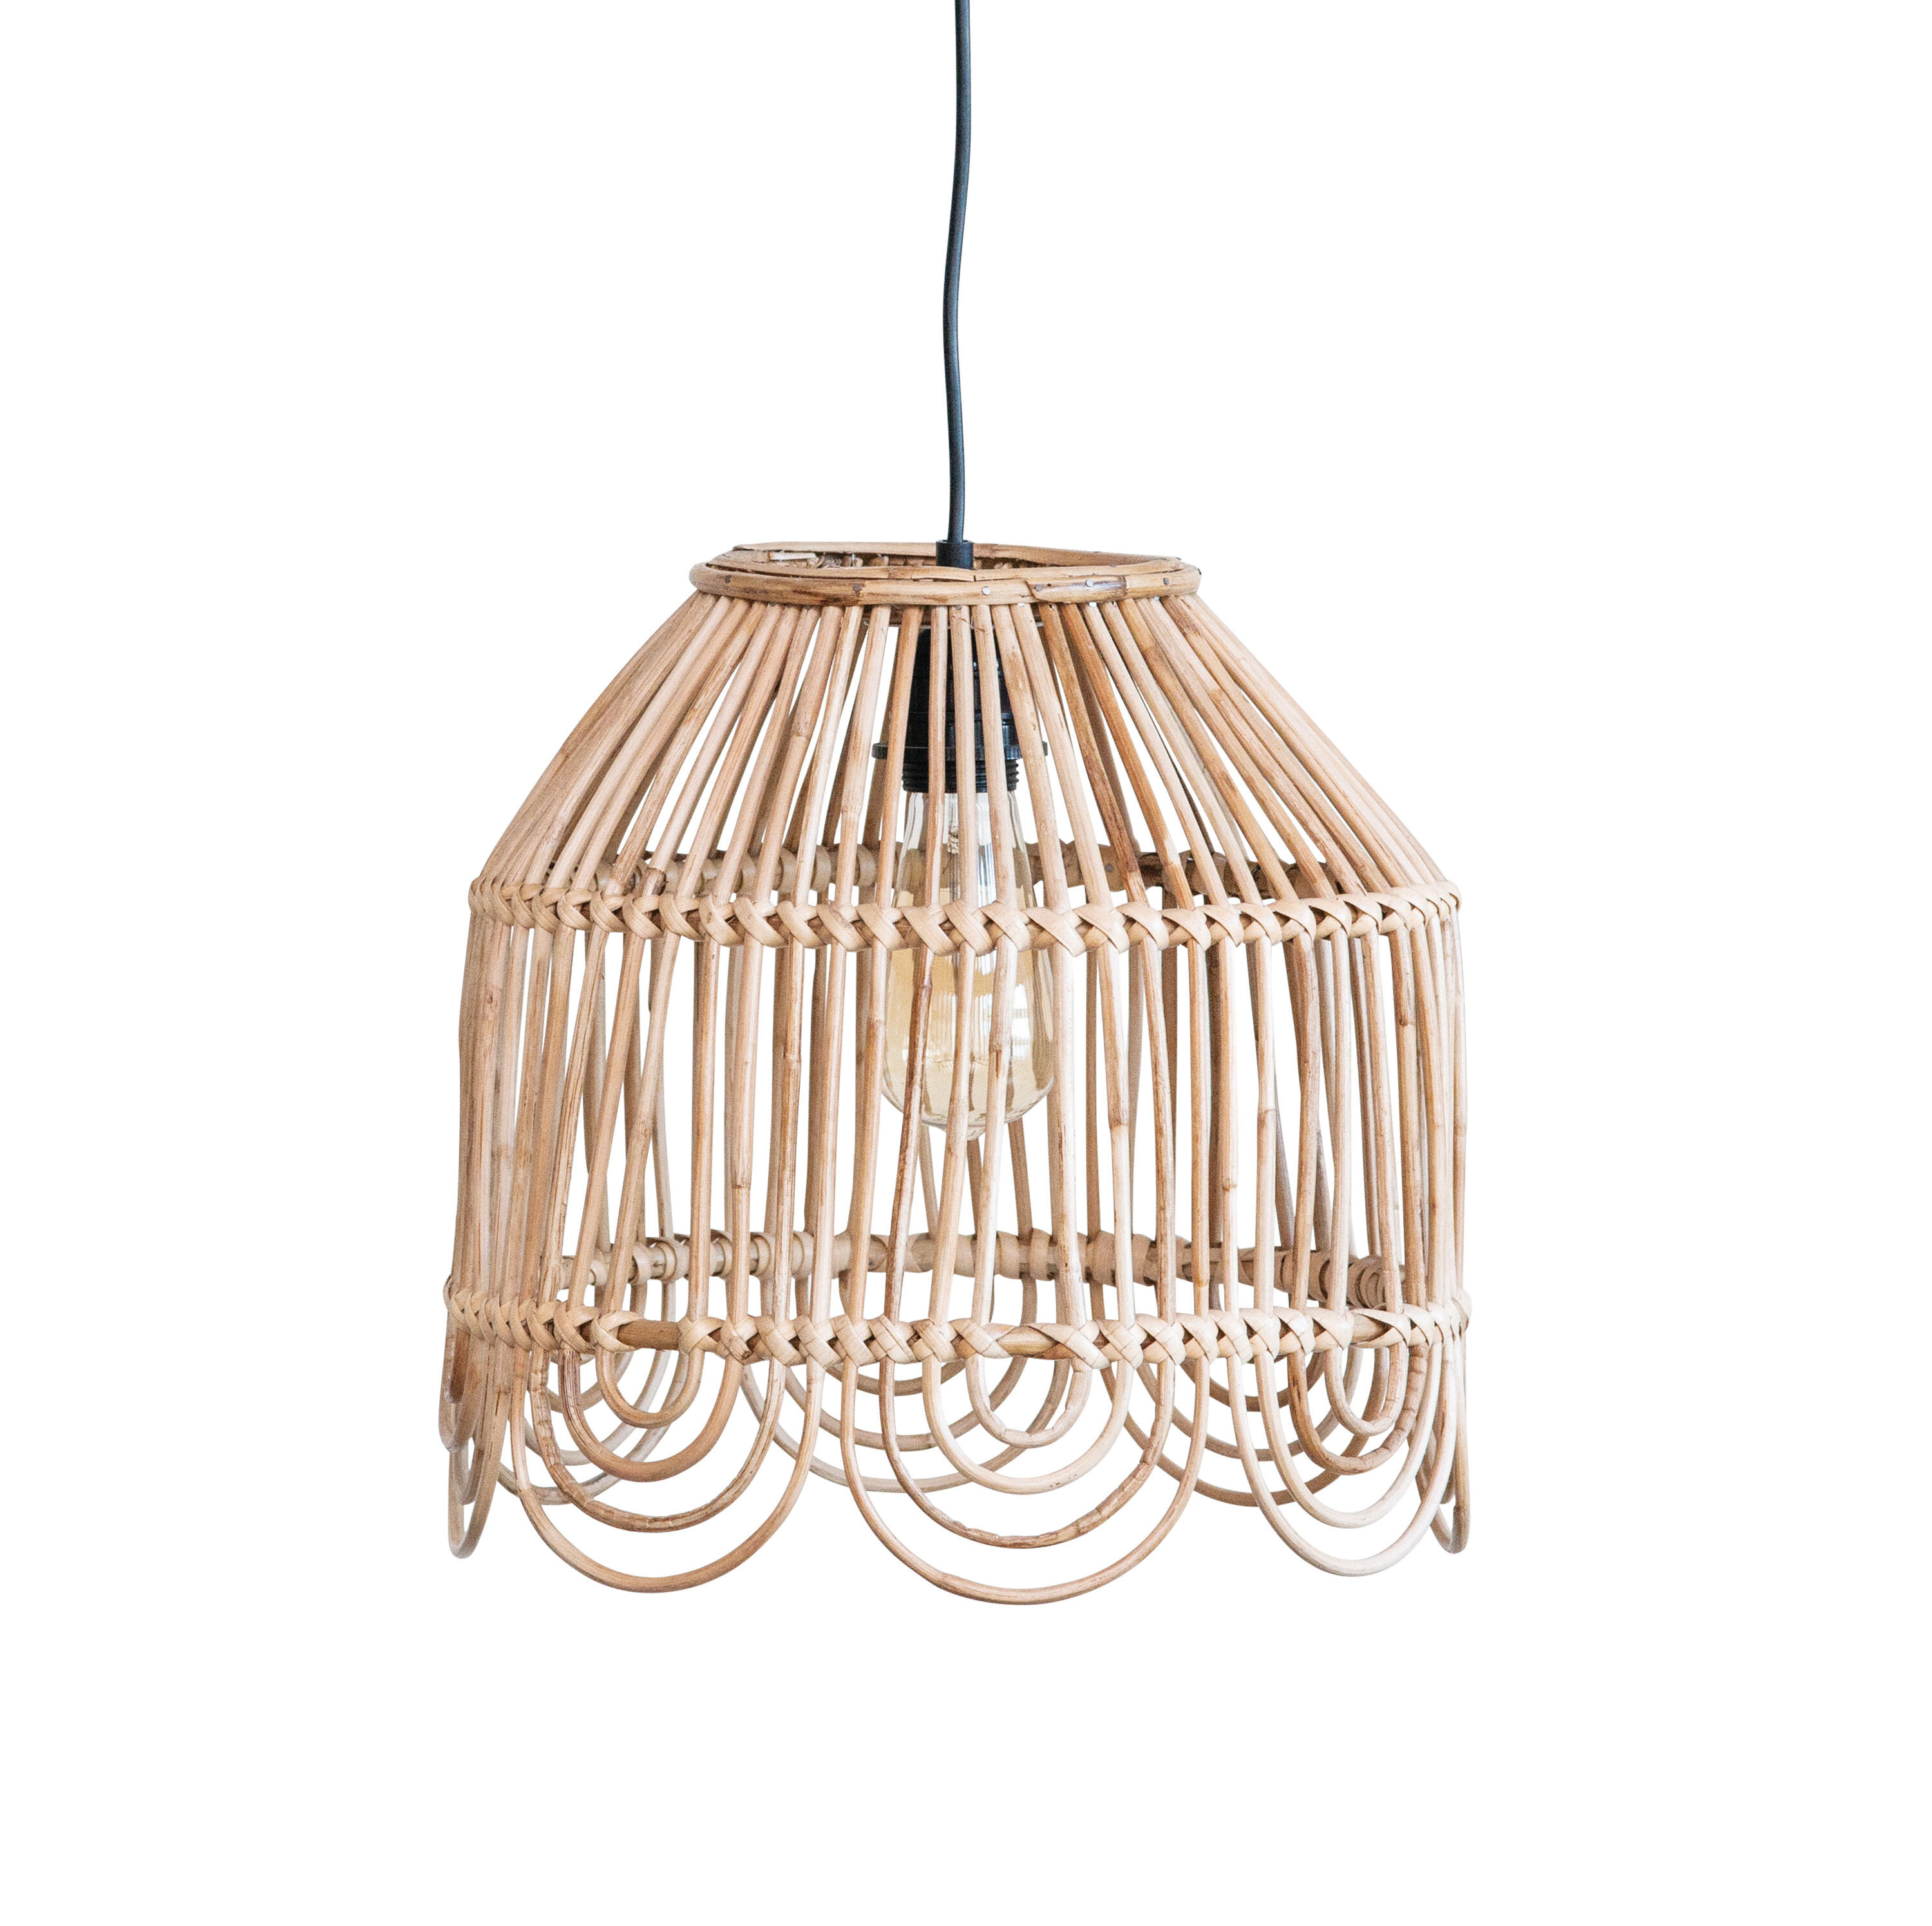 Knepp Round Cane 1 Light Dome Pendant With Regard To Kilby 1 Light Pendants (Photo 5 of 30)